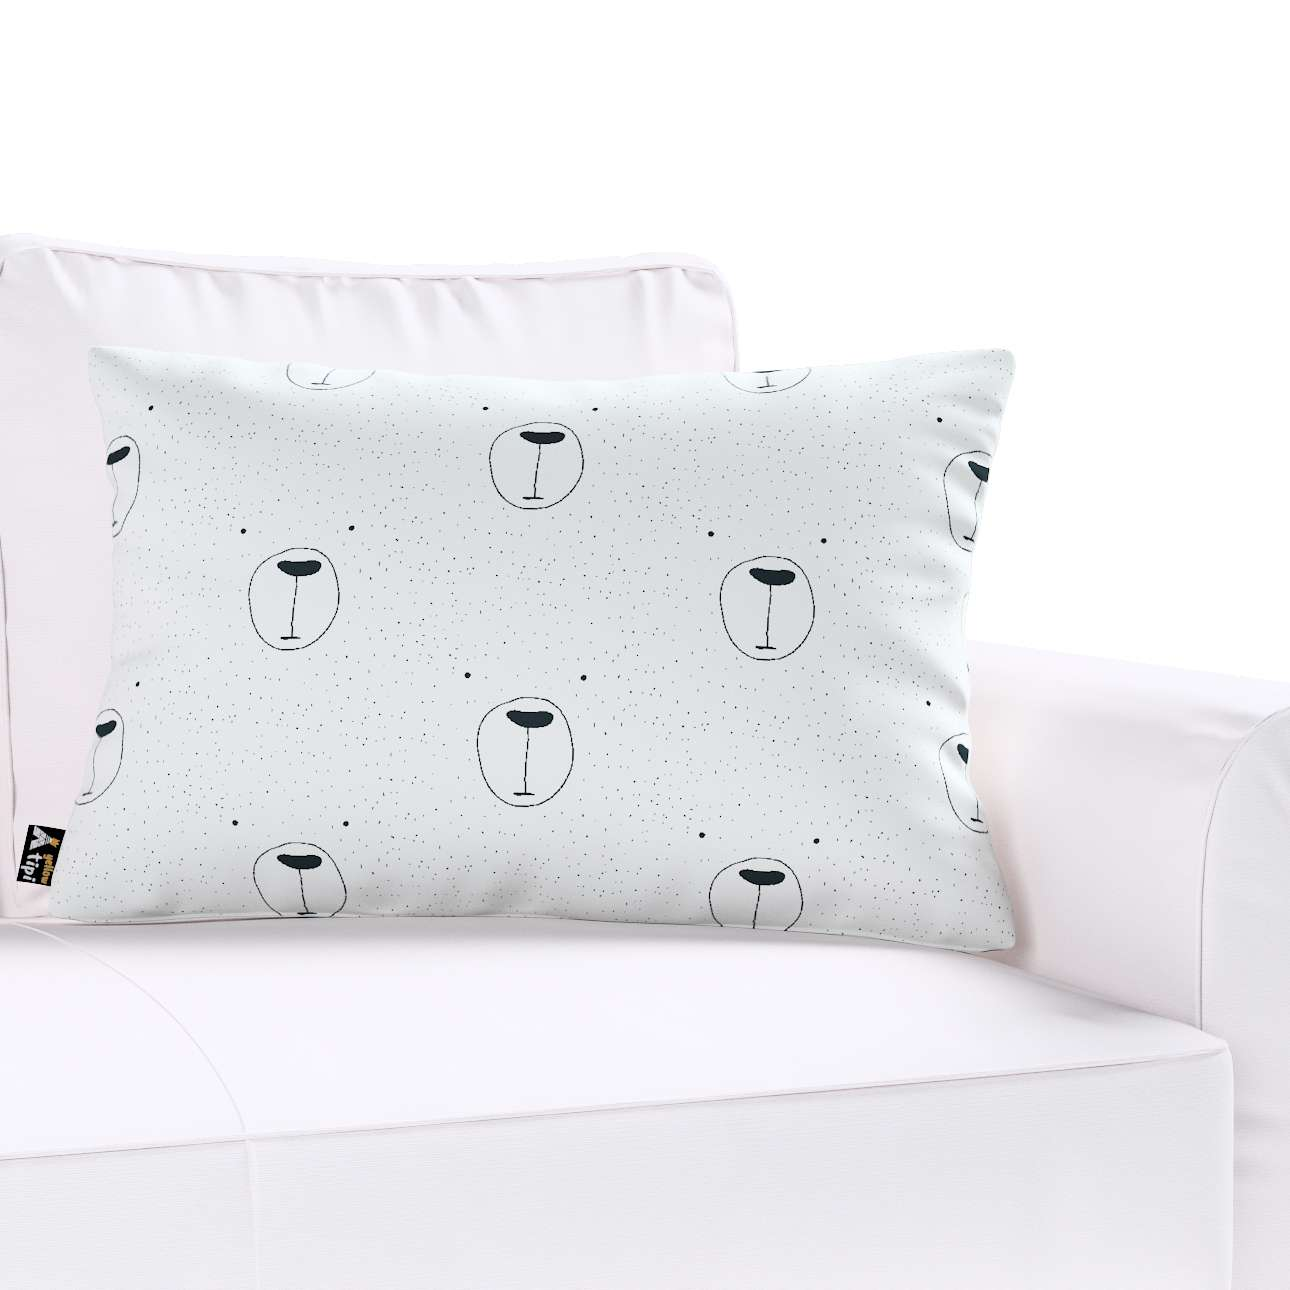 Milly rectangular cushion cover in collection Magic Collection, fabric: 500-06